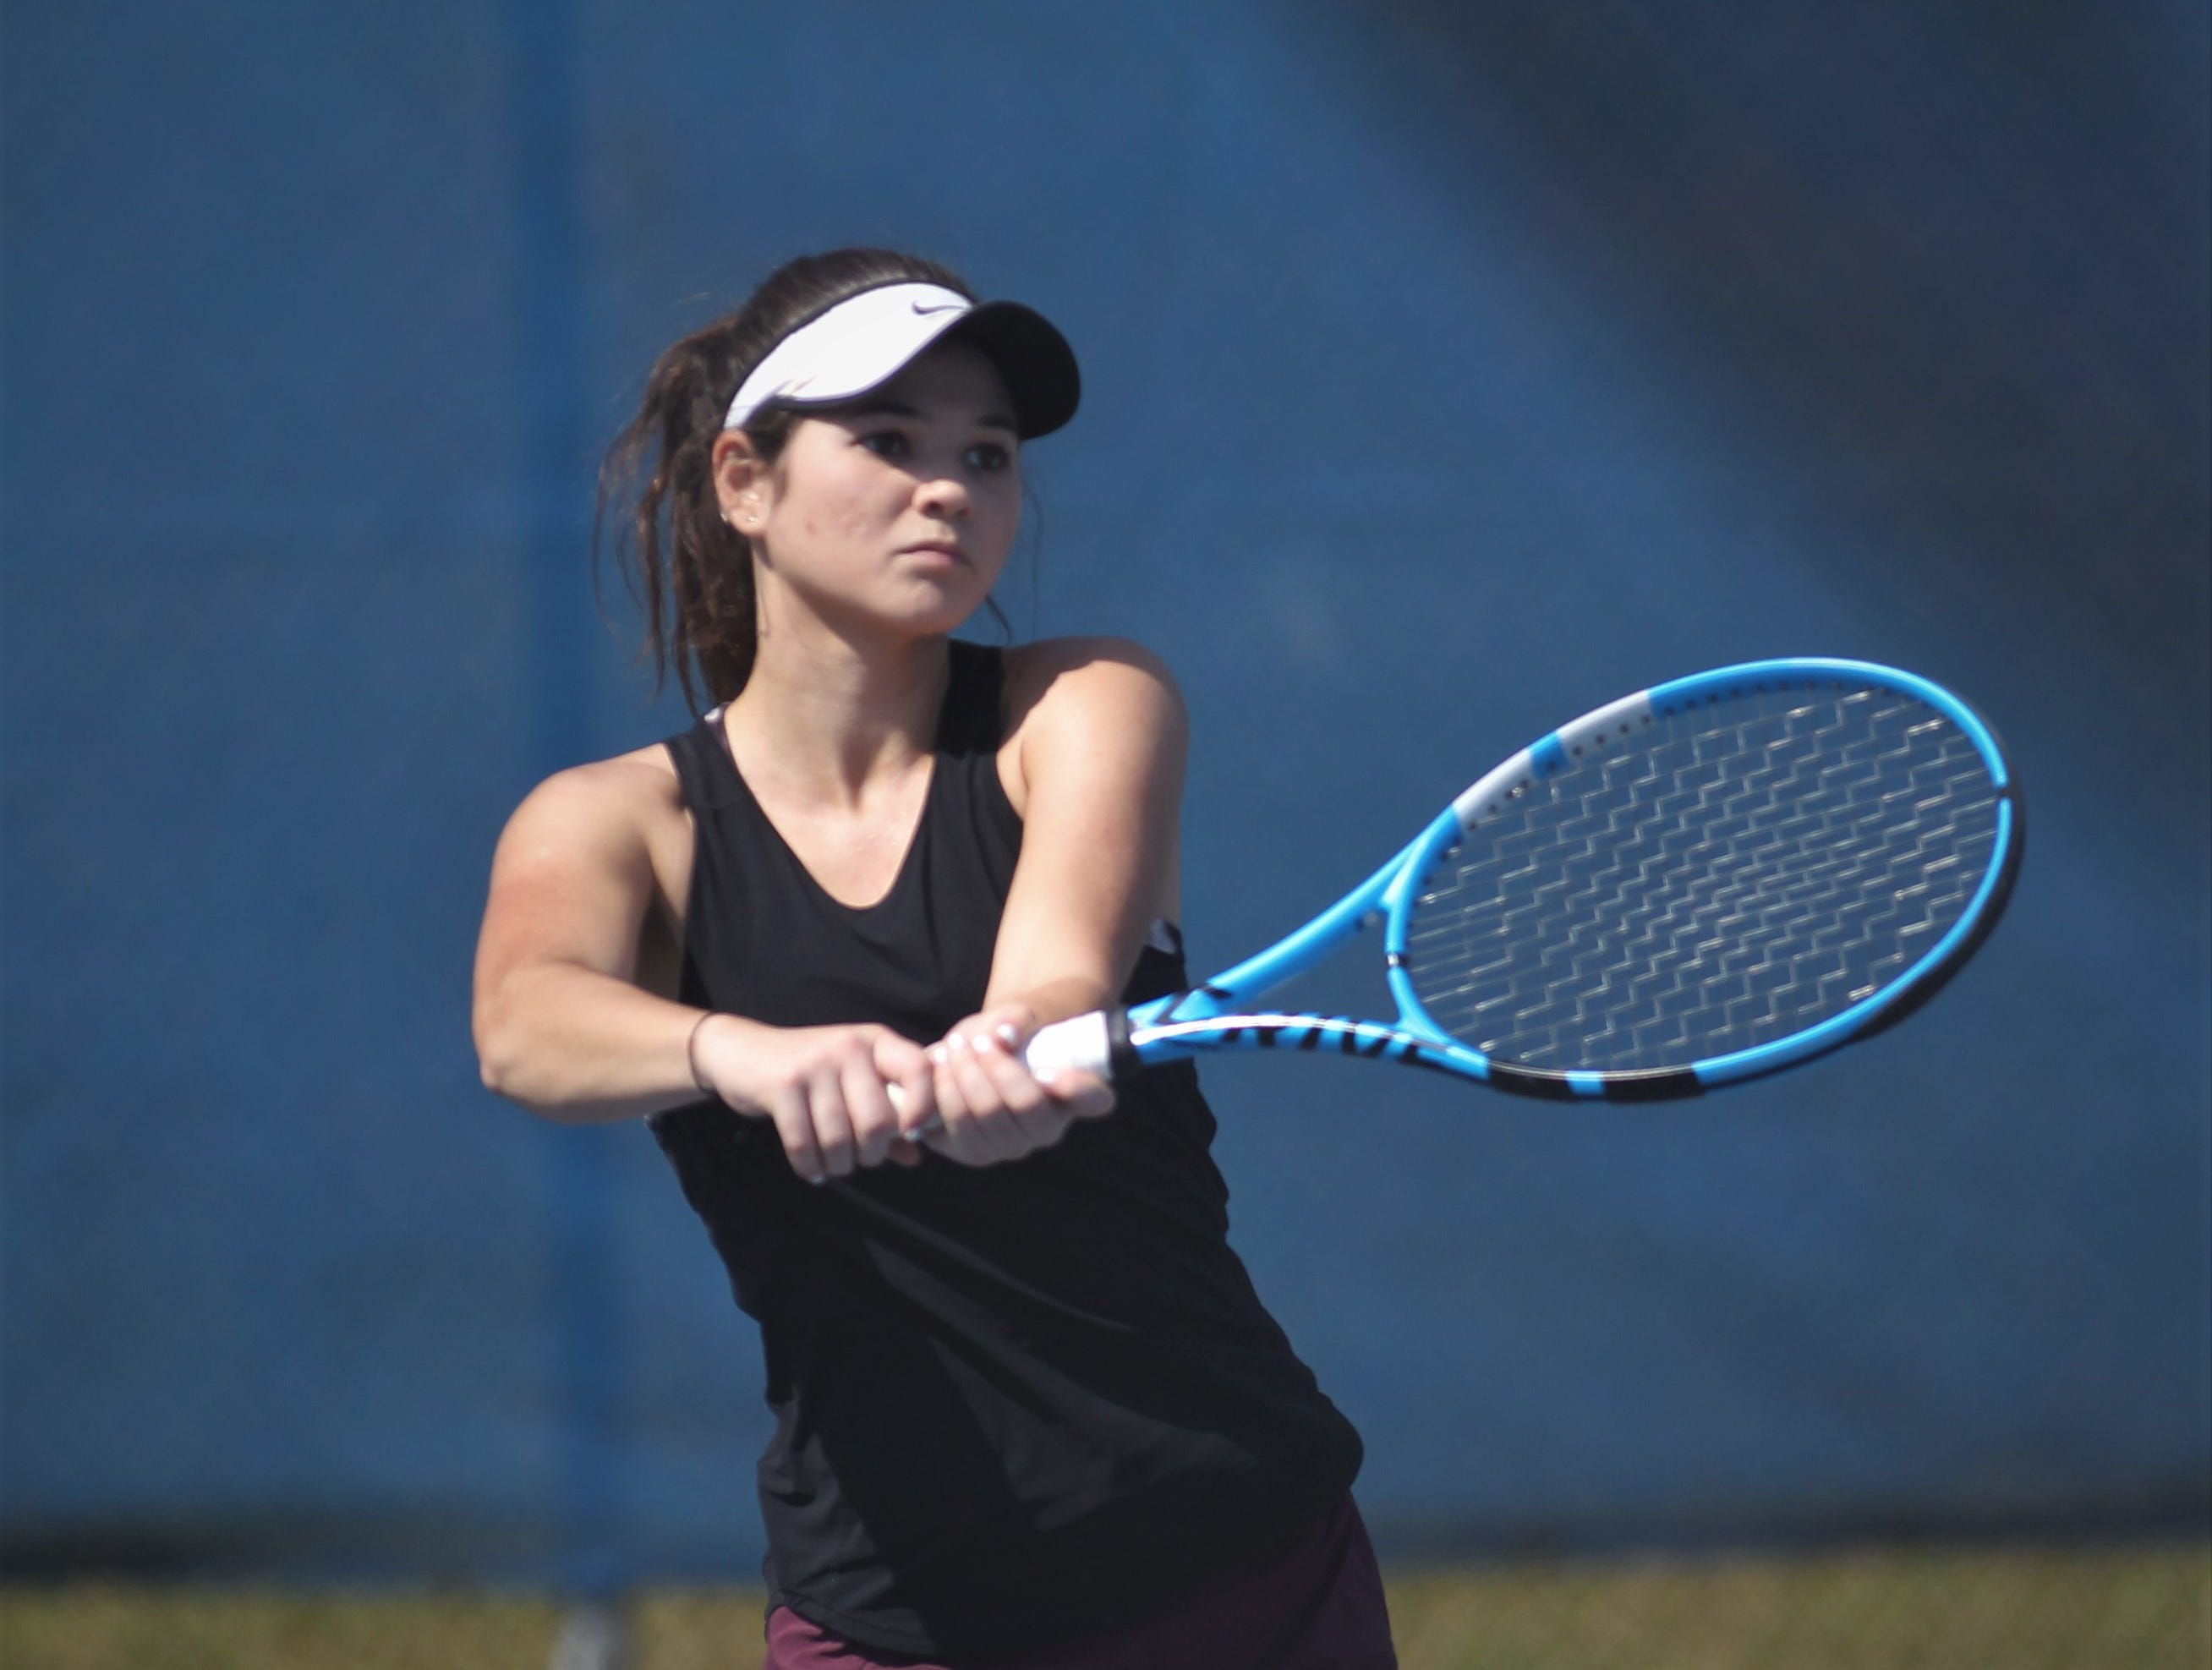 Chiles senior Gracie Wilson hits a return shot during the boys and girls tennis 2019 City Tournament at Tom Brown Park on March 12, 2019.